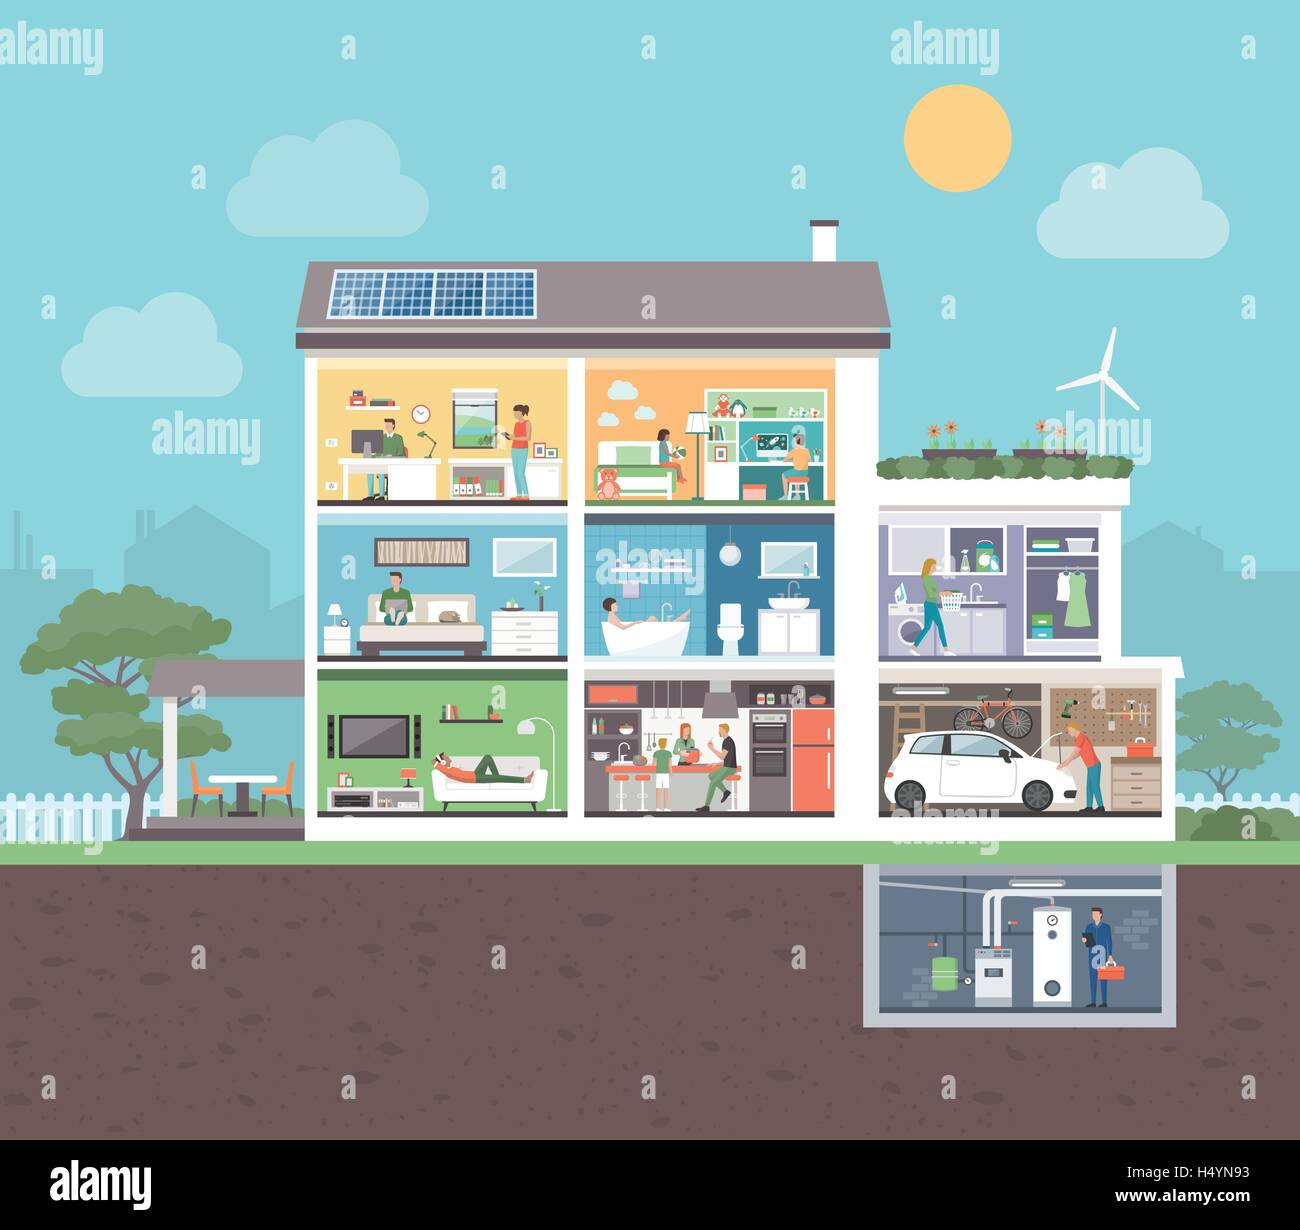 House cross section with room interiors and people, domestic lifestyle concept - Stock Vector